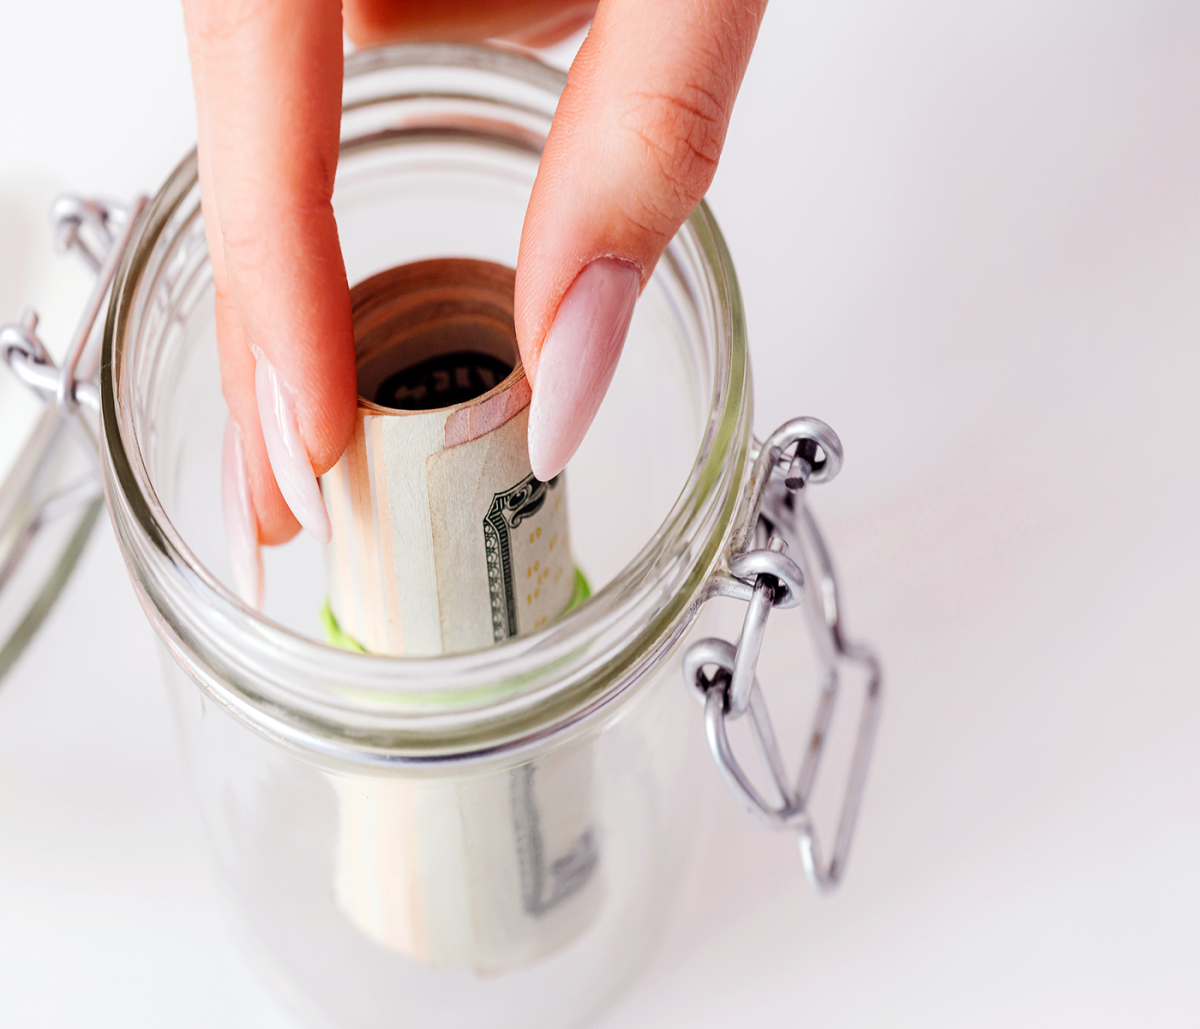 Saving is a good habit. Start small first better than having none